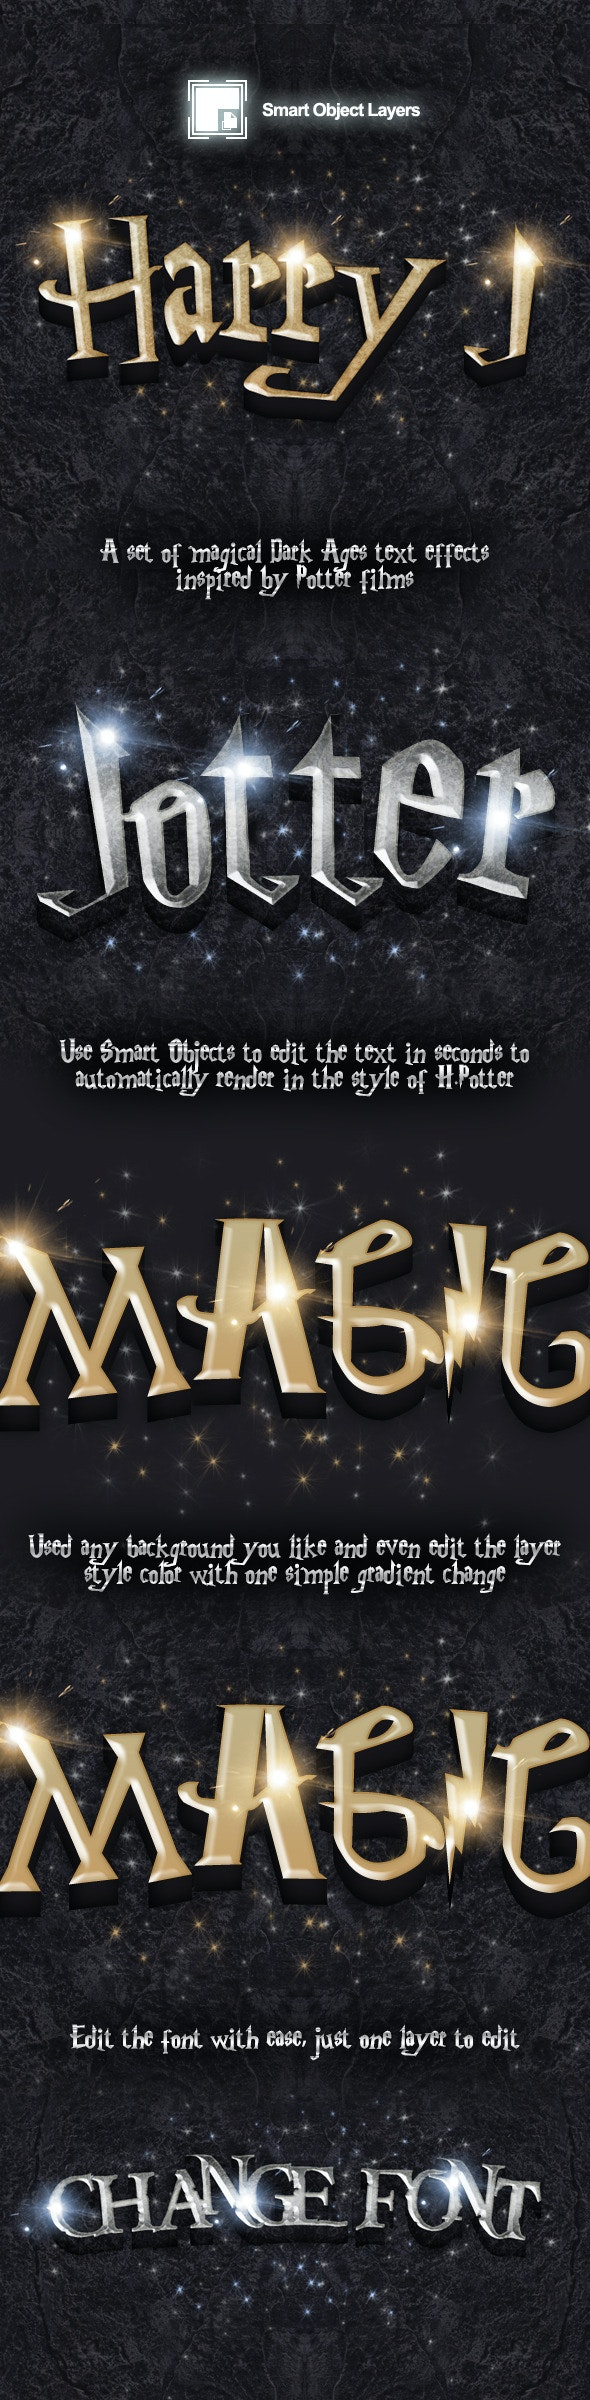 Potter Movie Style Editable Text Effect - Text Effects Styles